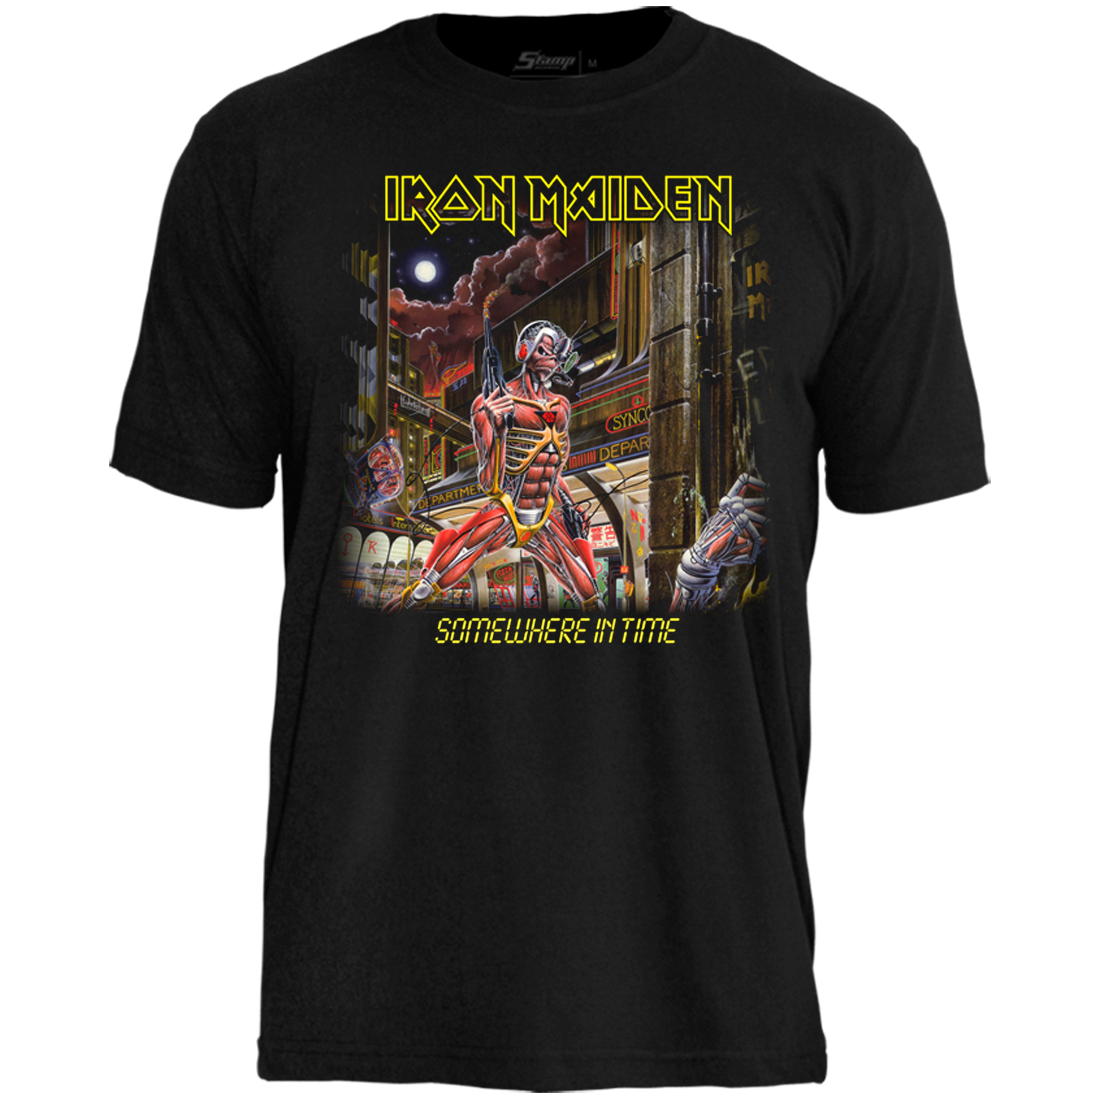 Camiseta Iron Maiden Somewere In Time